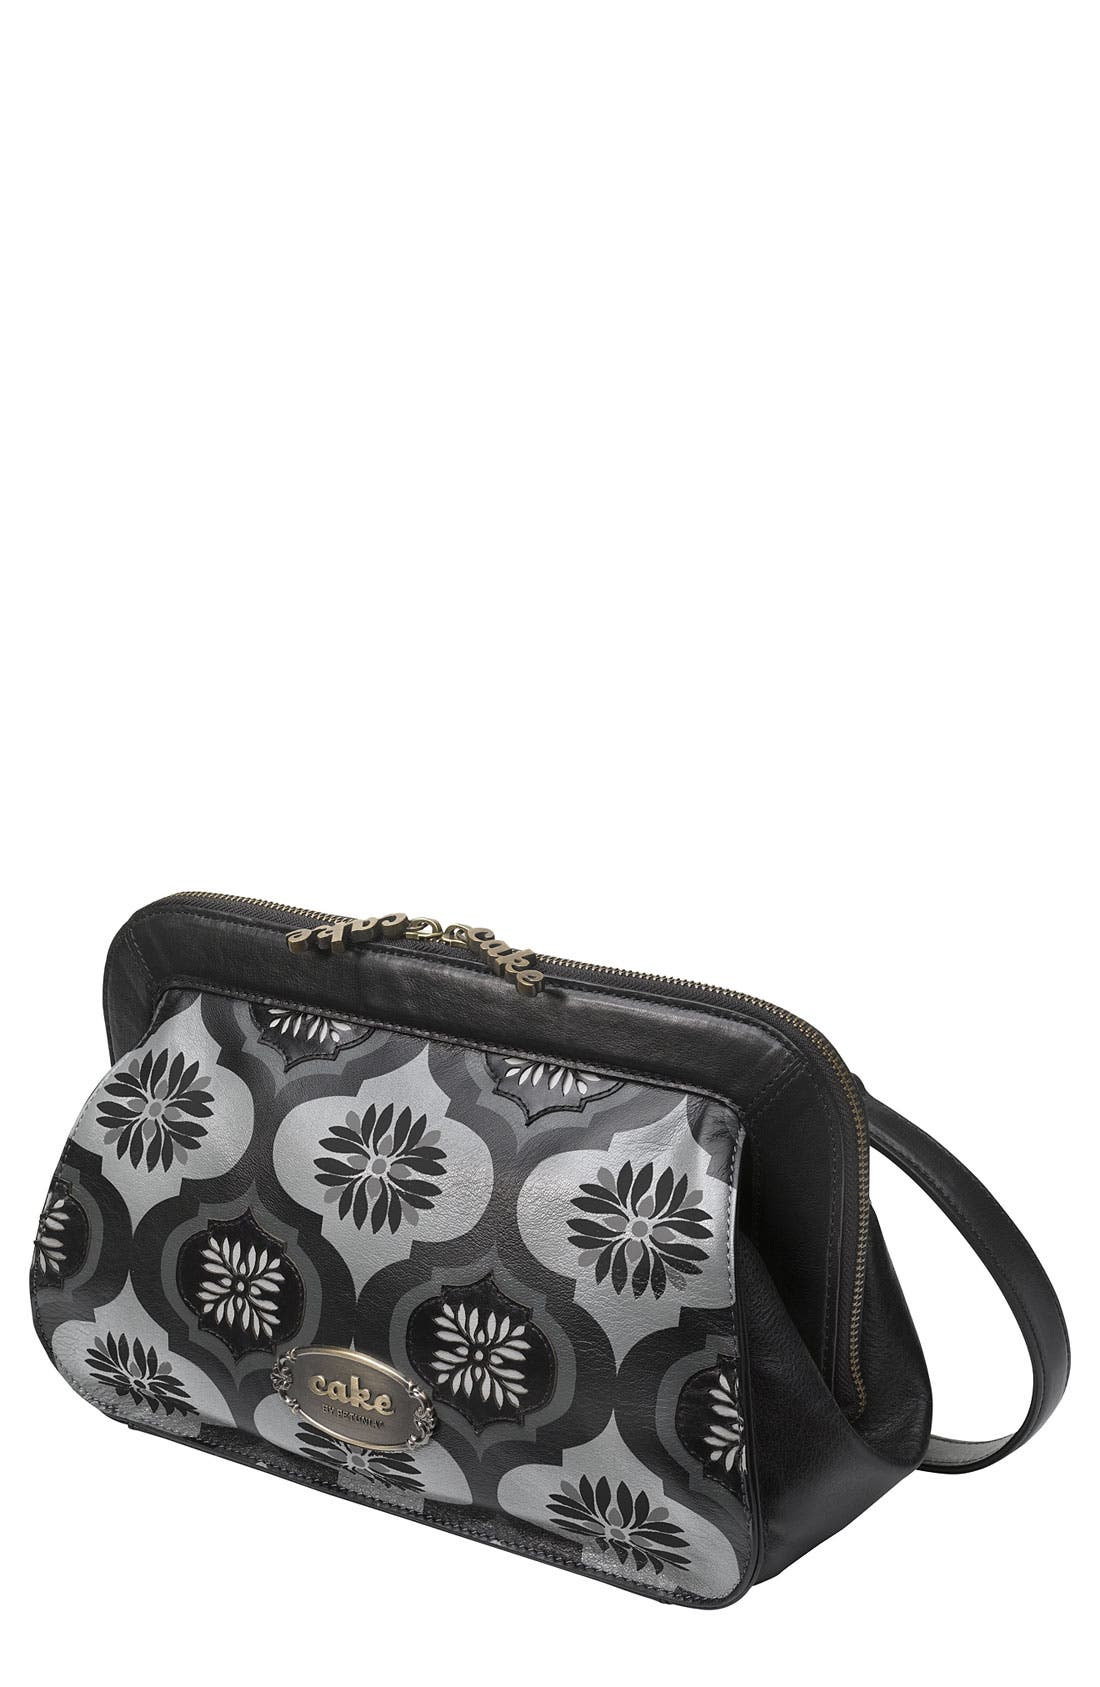 Alternate Image 1 Selected - Petunia Pickle Bottom 'Cameo' Clutch